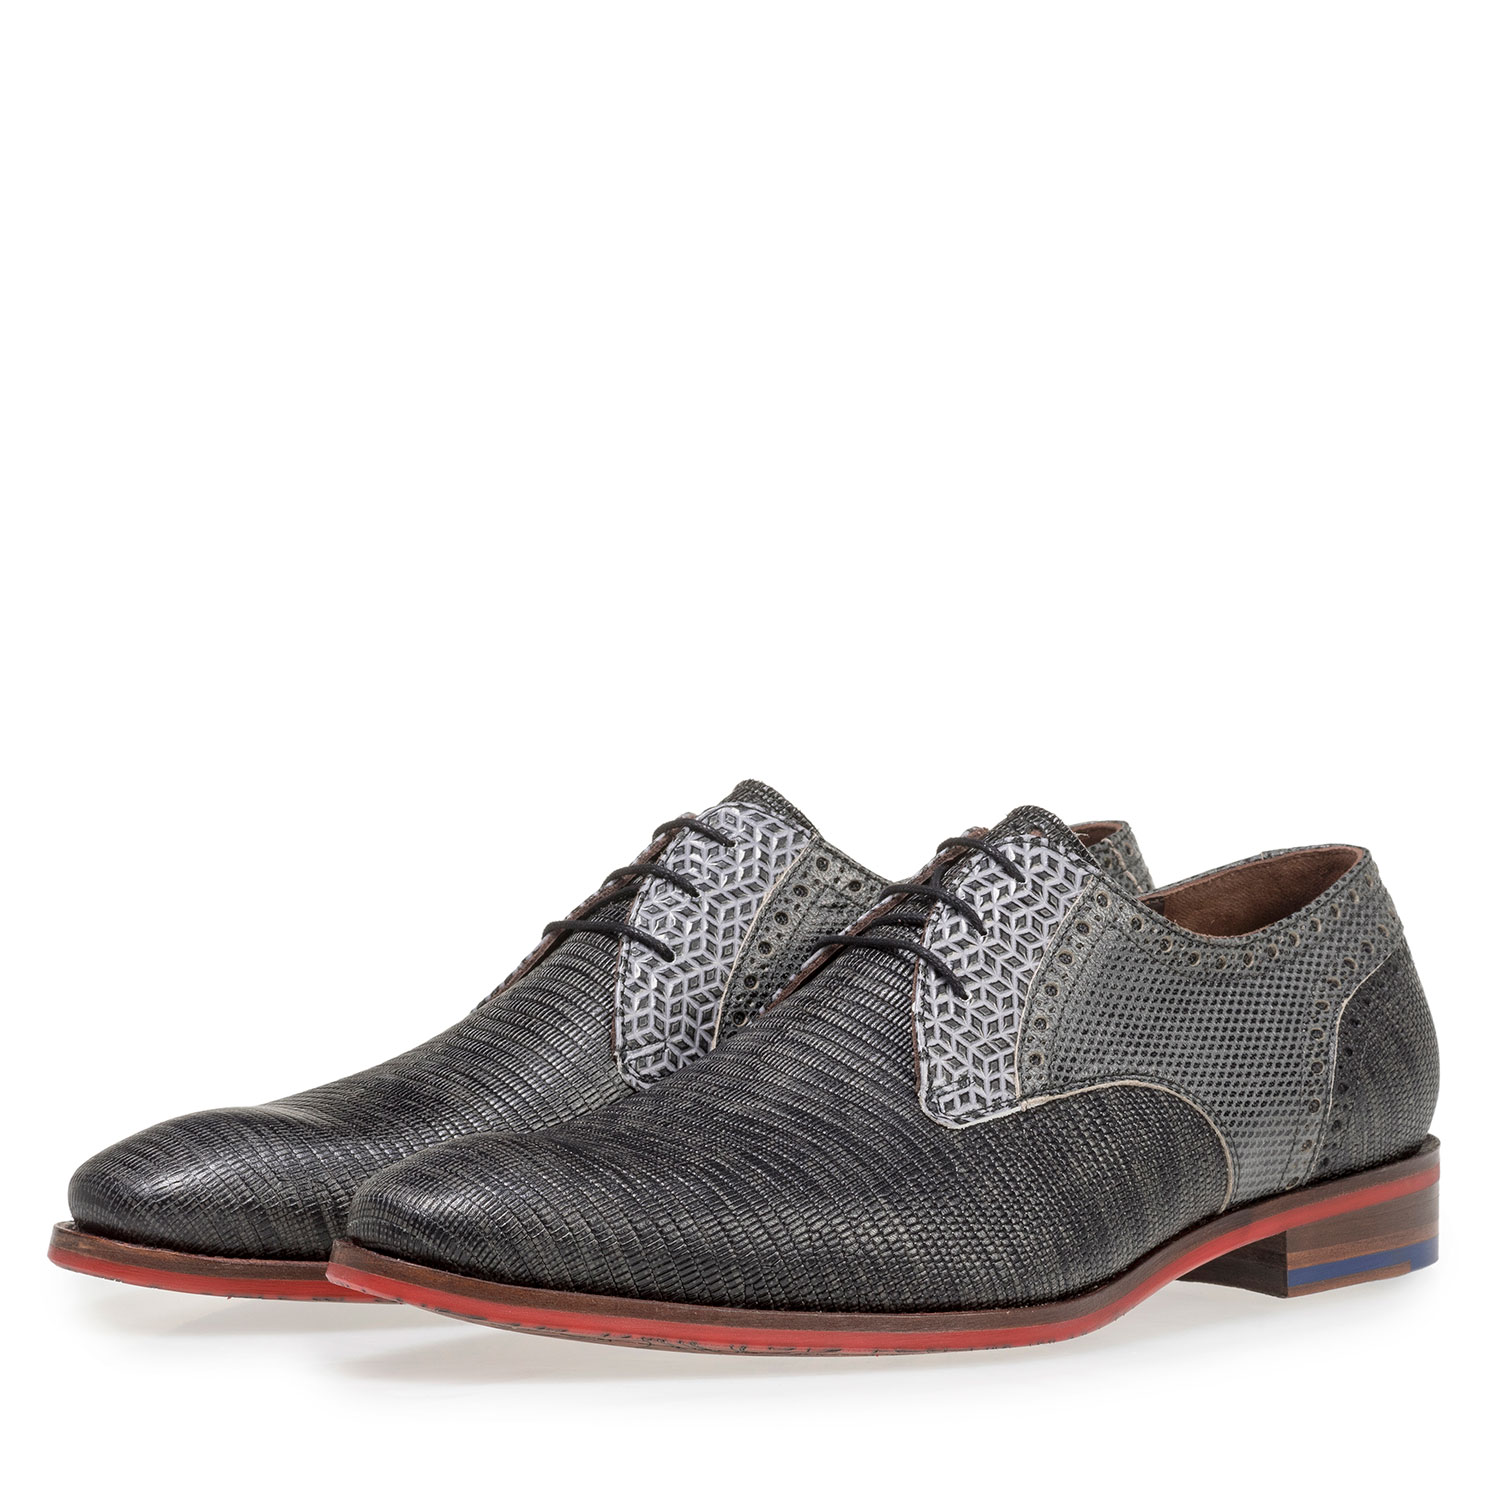 18107/06 - Grey leather lace shoe with lizard print